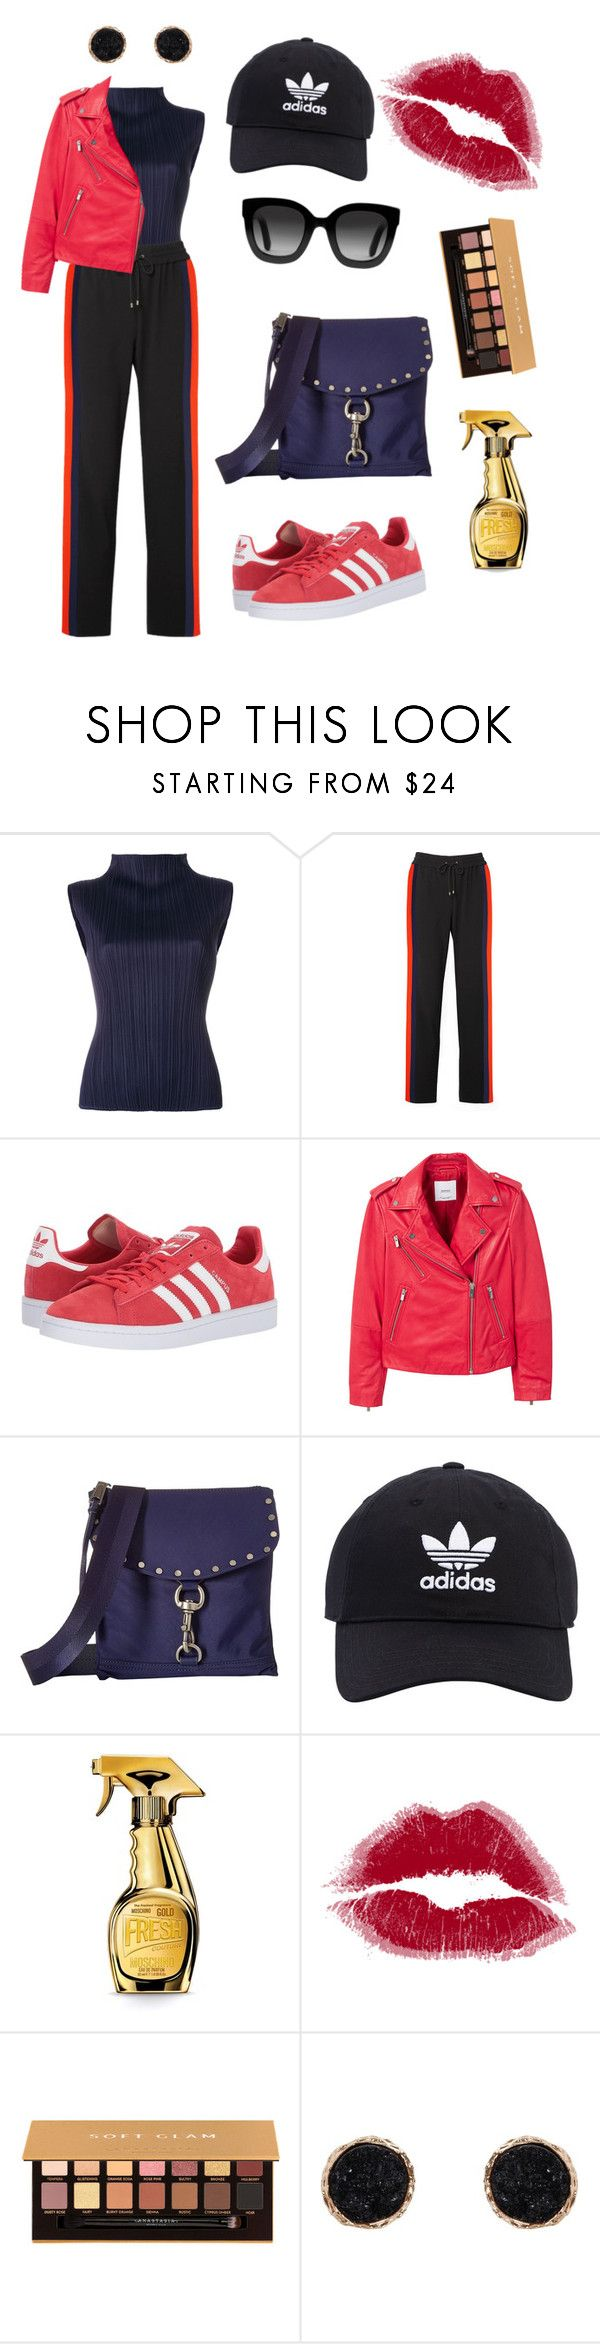 """""""Sporty look"""" by izy-vilela ❤ liked on Polyvore featuring Pleats Please by Issey Miyake, Kenzo, adidas Originals, MANGO, Rebecca Minkoff, Moschino, Anastasia Beverly Hills, Humble Chic and Gucci"""